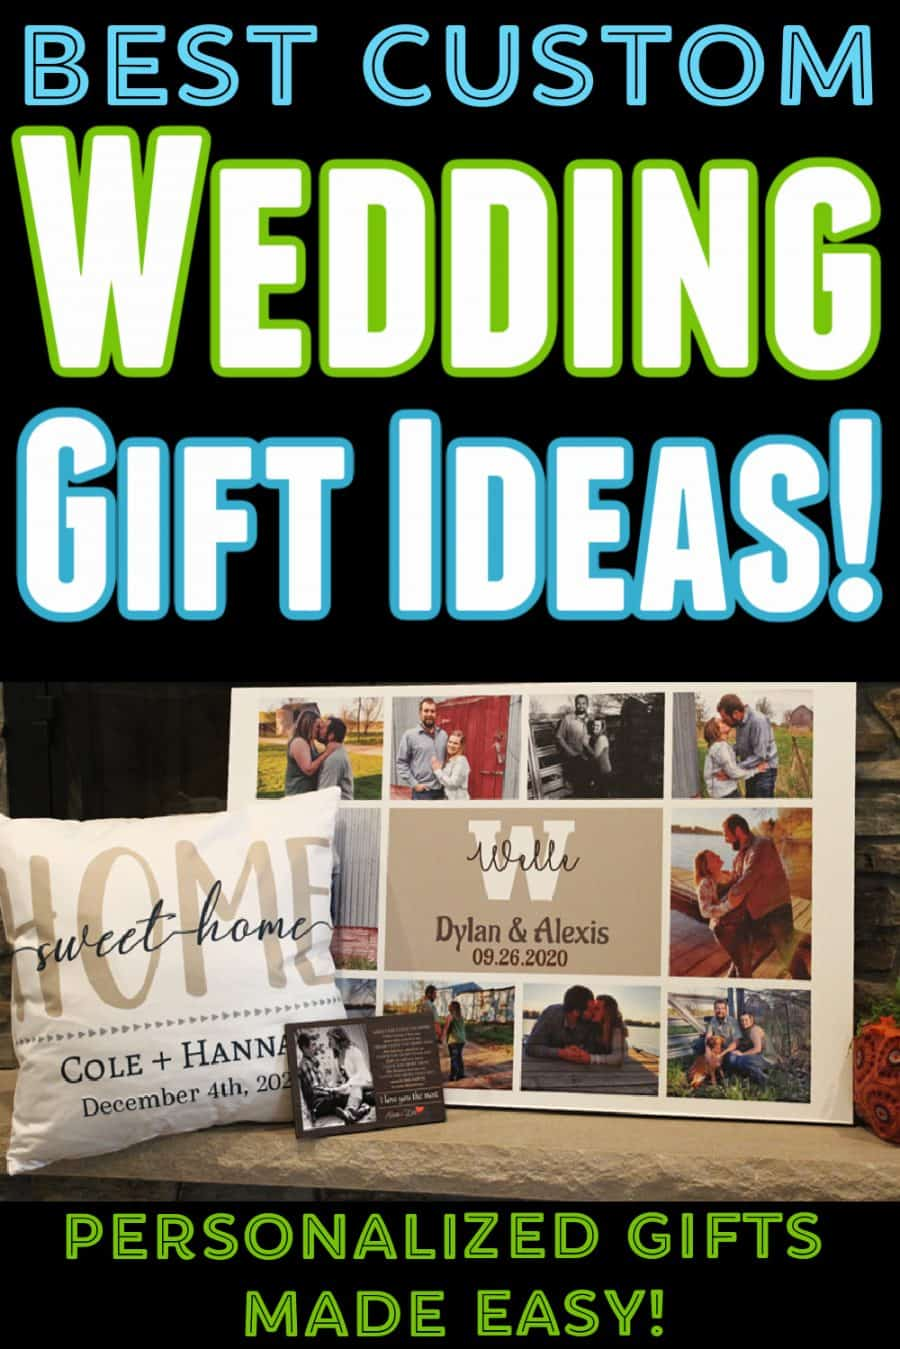 Personalized Wedding Gifts Made Easy (+ 365Canvas Discount)Personalized Wedding Gifts Made Easy (+ 365Canvas Discount)